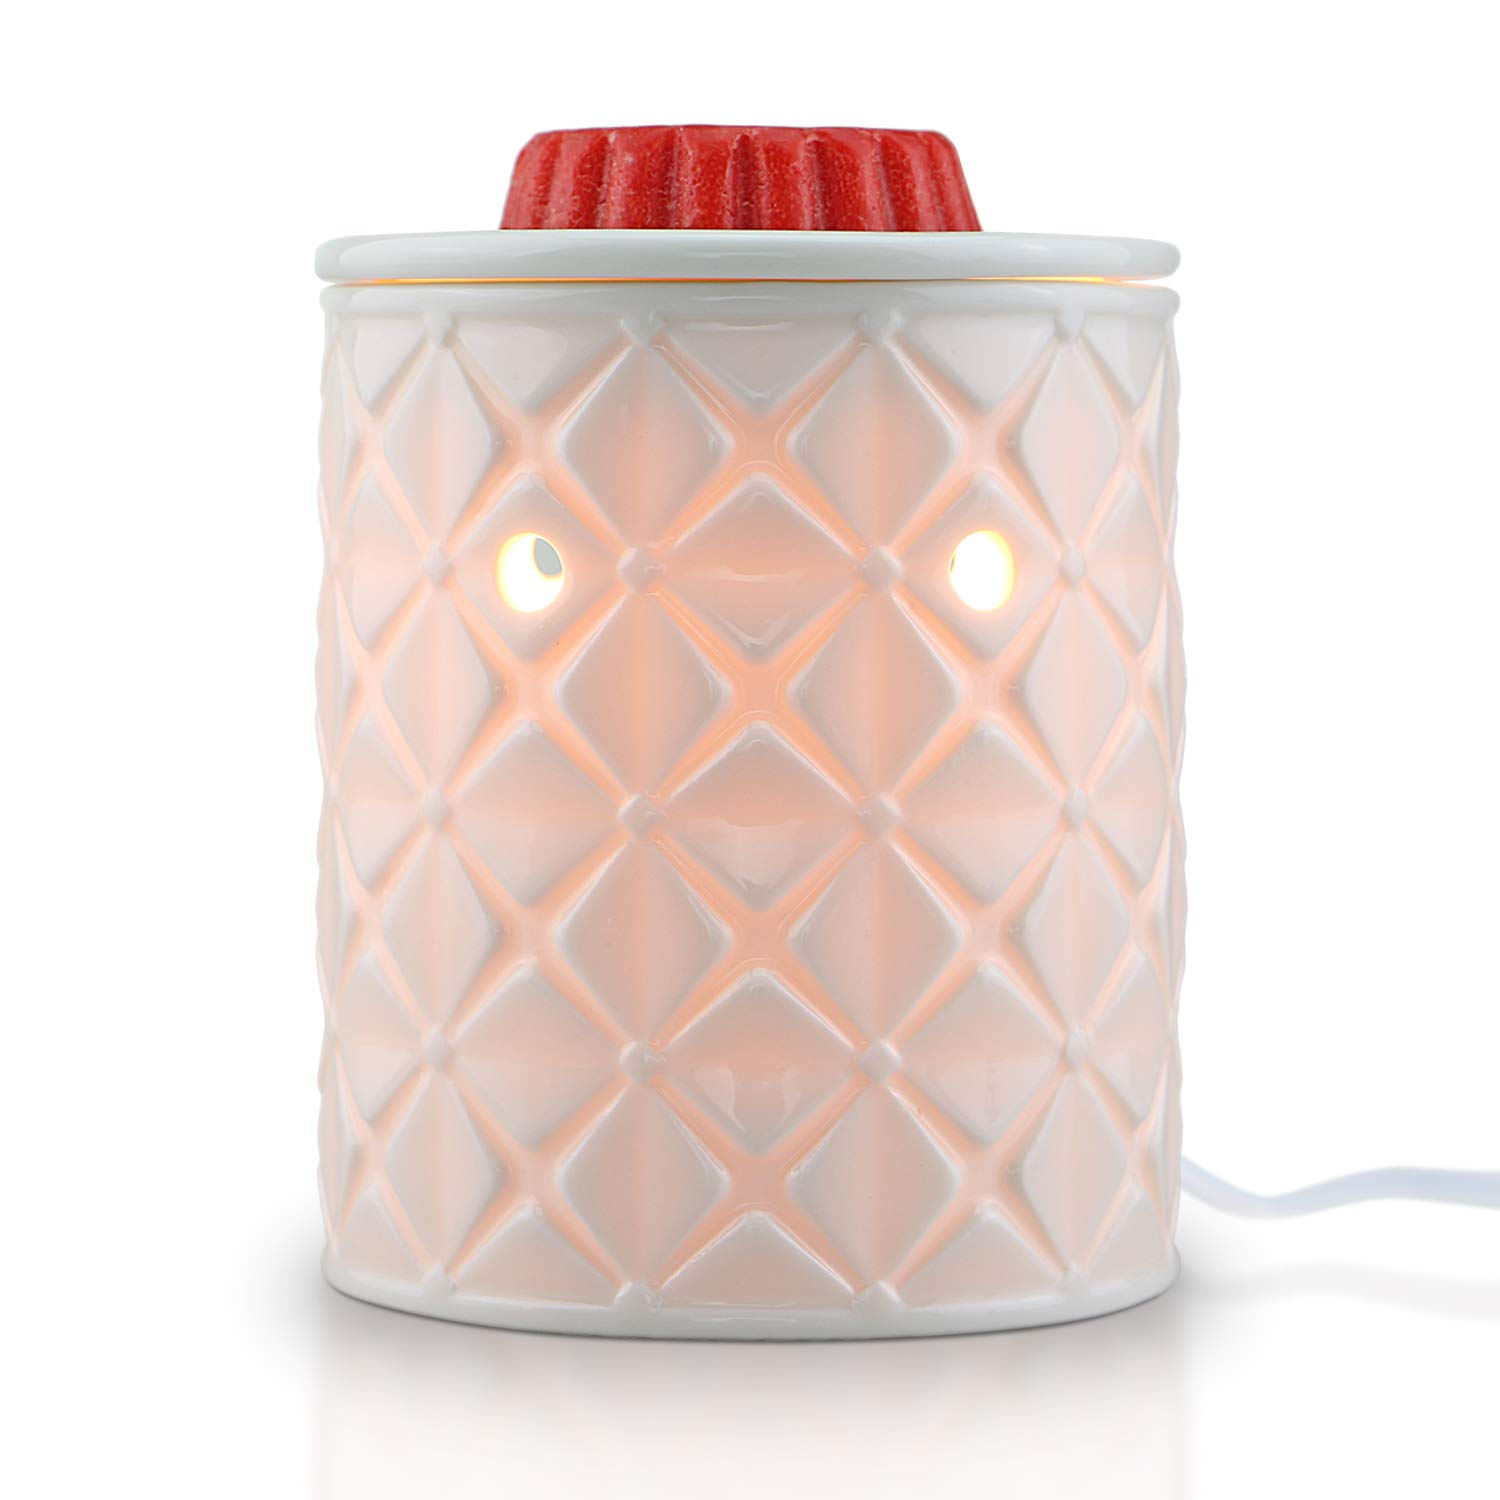 STAR MOON Electric 2-in-1 Candle Warmer for Wax Melt, Home Fragrance Diffuser, Fragrance Air Fresheners, Home Décor, No Flame, Removable Dish, with One More Bulb (Four-Leaf Clover)